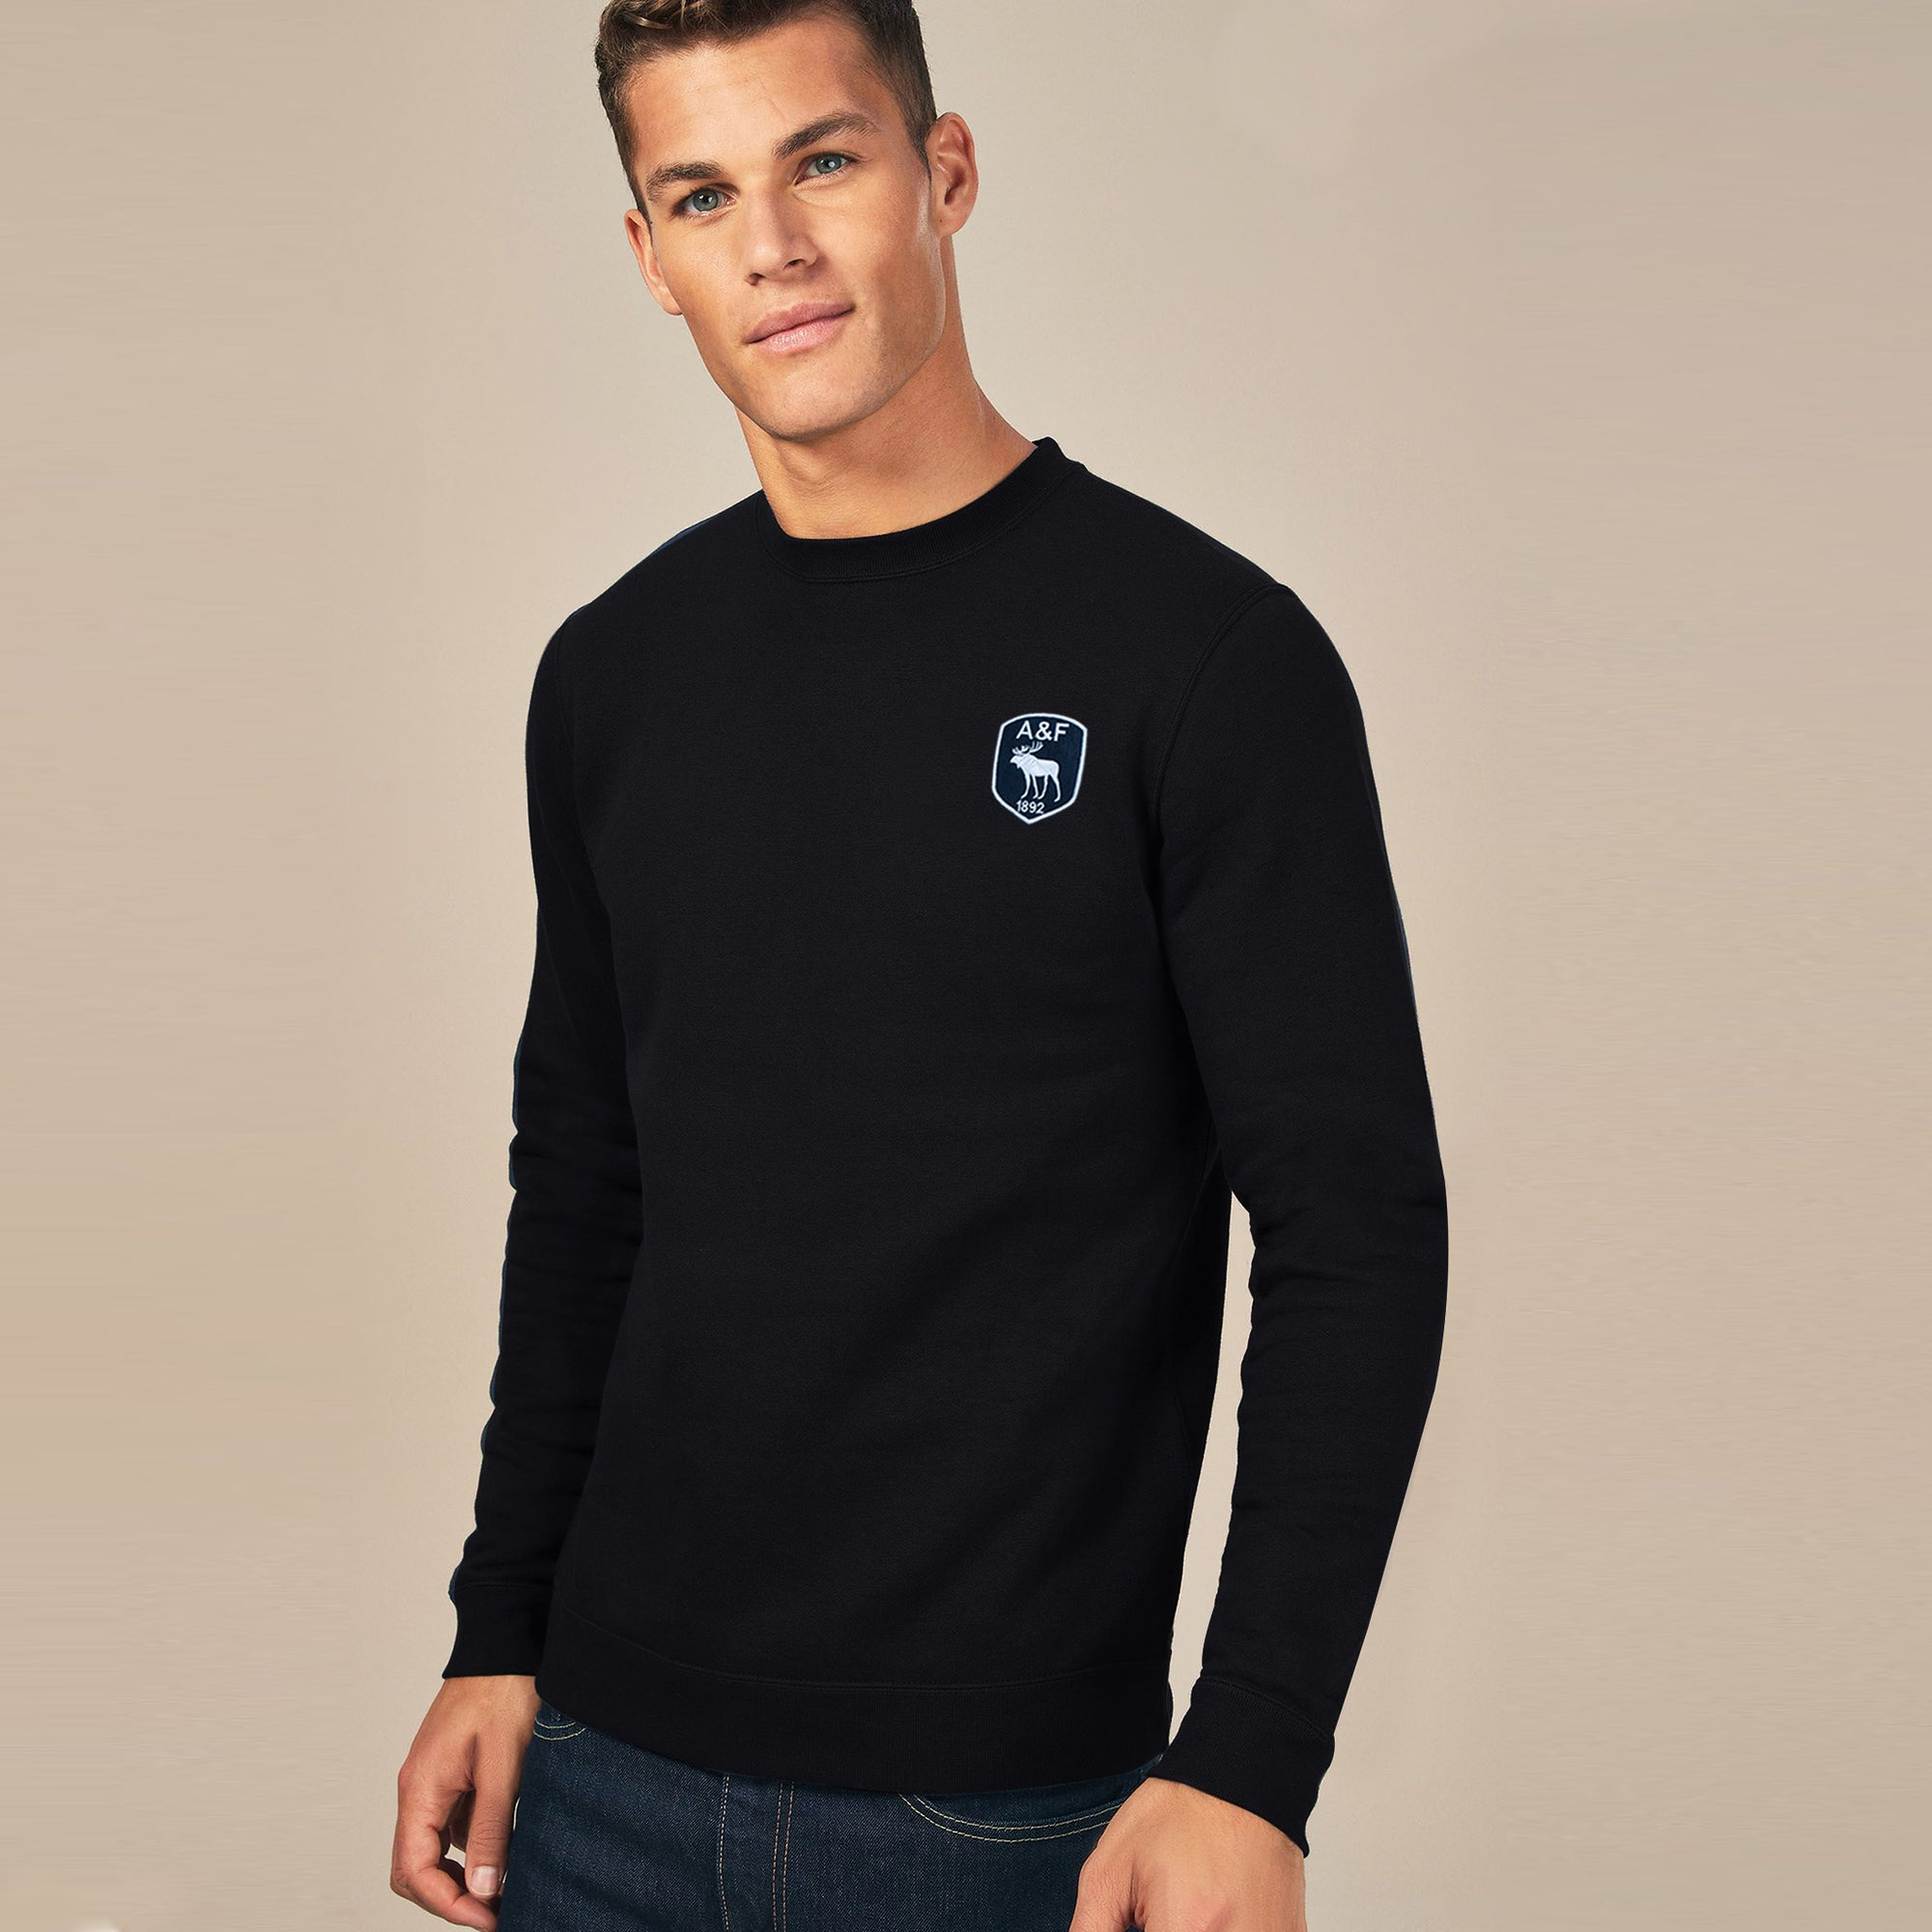 A&F Fleece Crew Neck Sweatshirt For Men-Black-BE7121